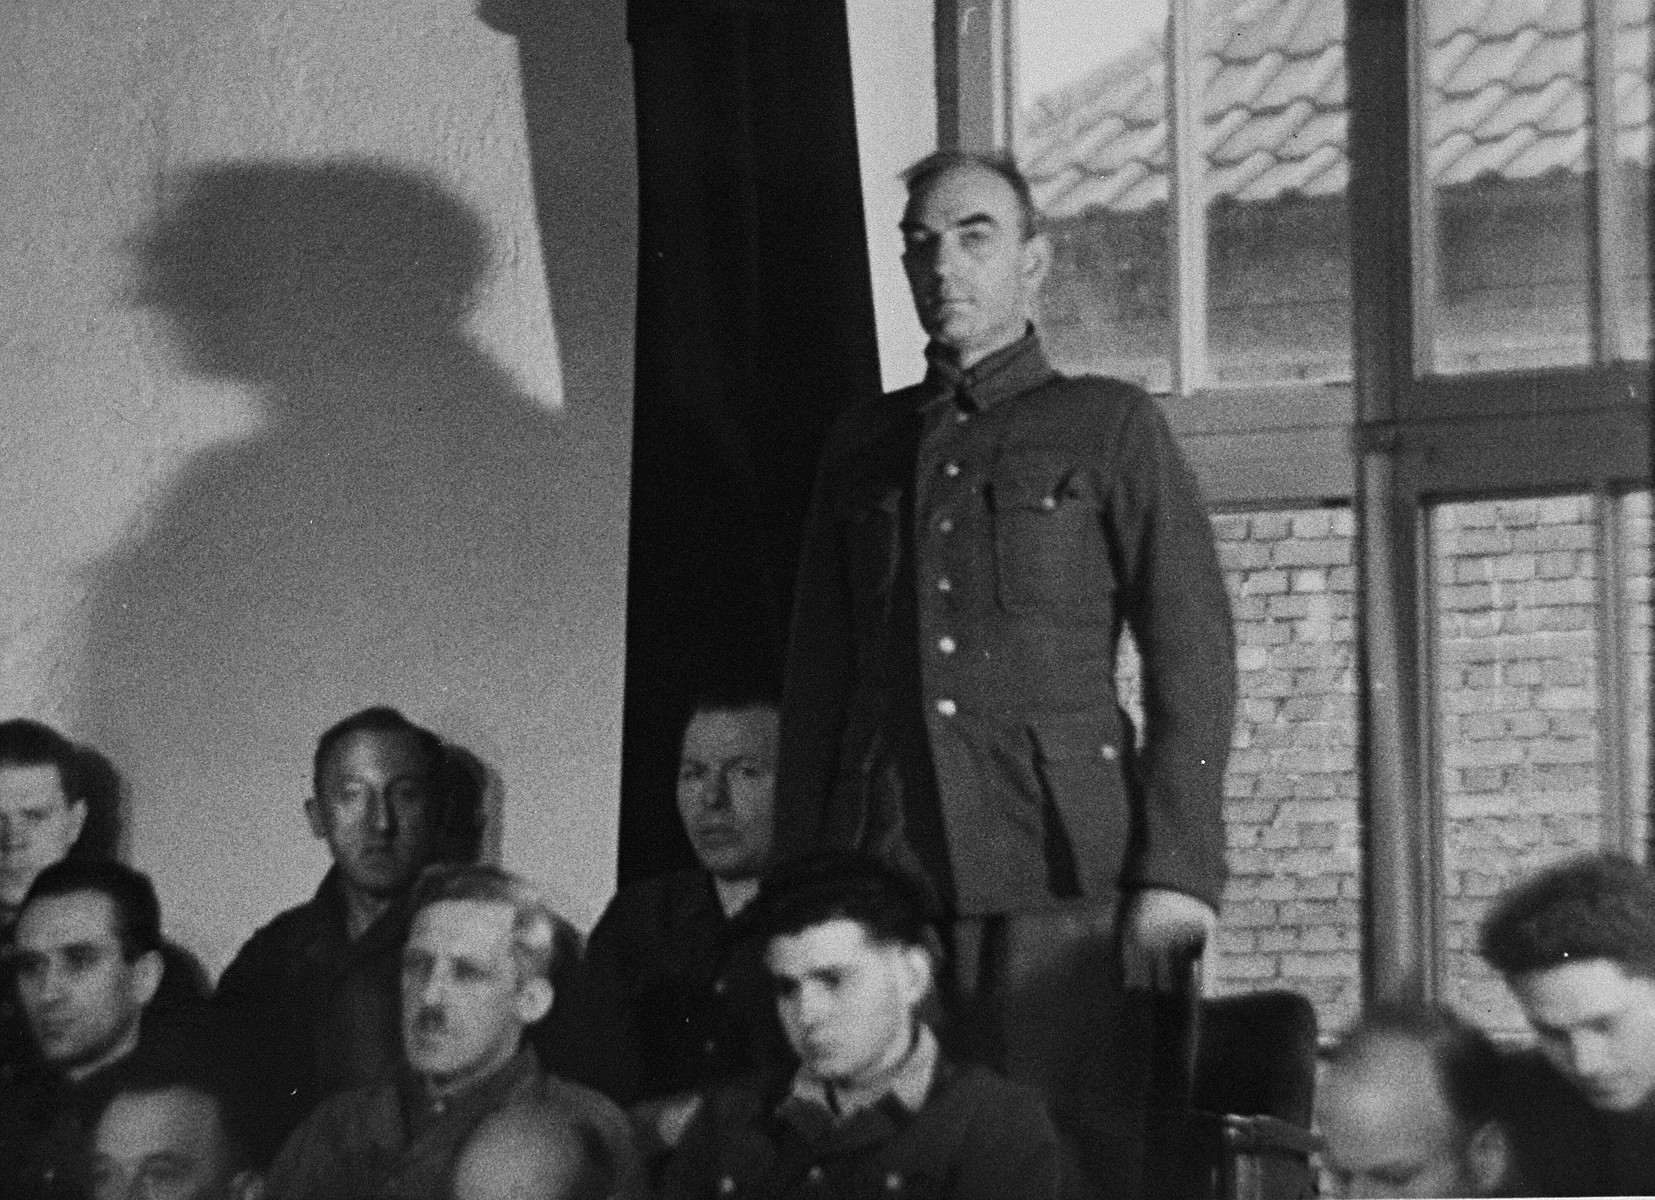 August Blei, a defendant at the trial of 61 former camp personnel and prisoners from Mauthausen, stands in his place in the defendants' dock.